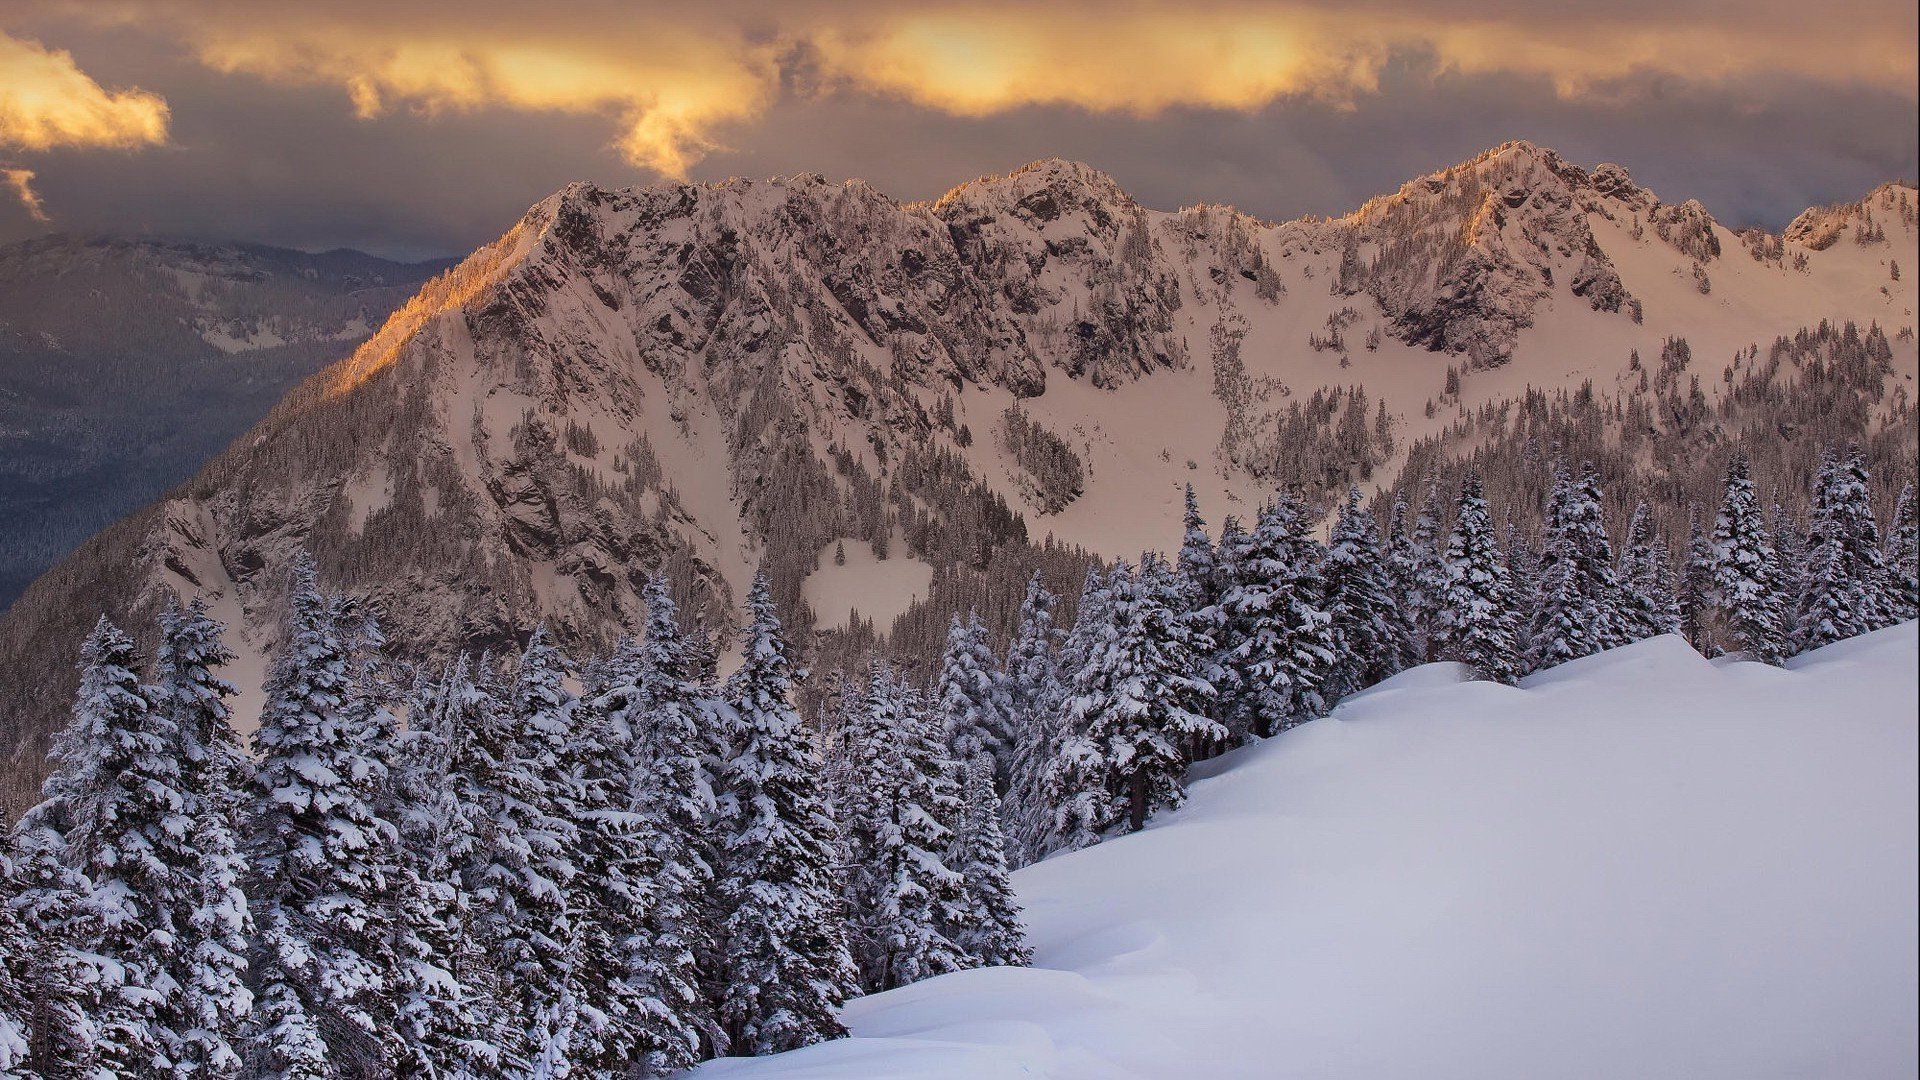 Download Sowy Mountains In The Morning Light Wallpaper